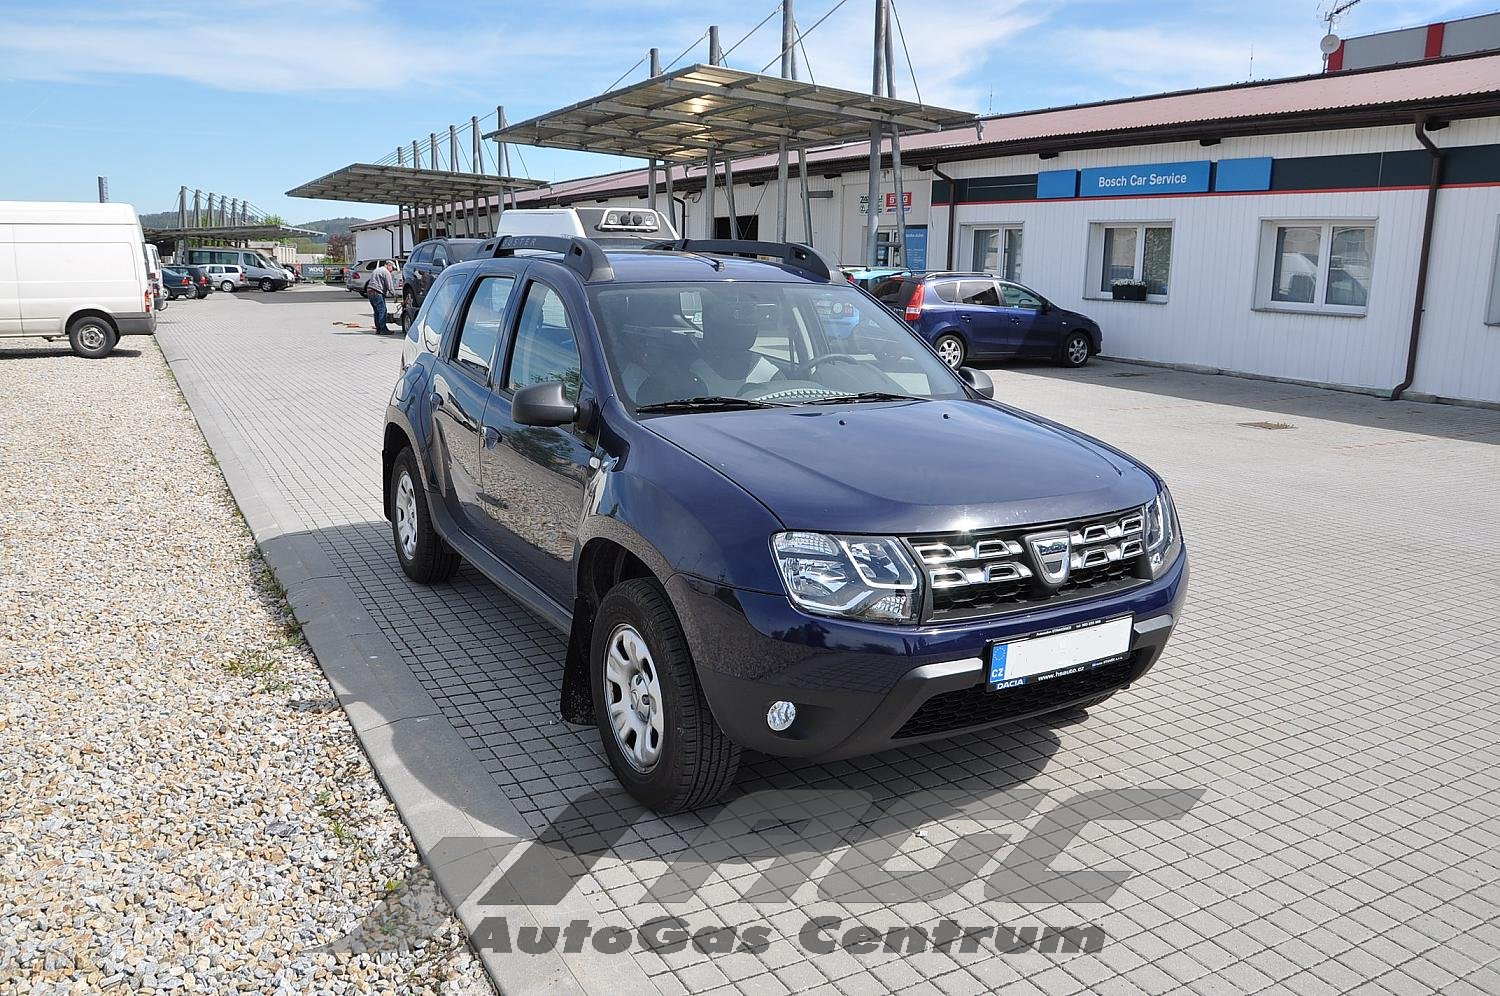 conversion lpg dacia duster 1 6 dacia photo gallery conversion autogas centrum strakonice. Black Bedroom Furniture Sets. Home Design Ideas